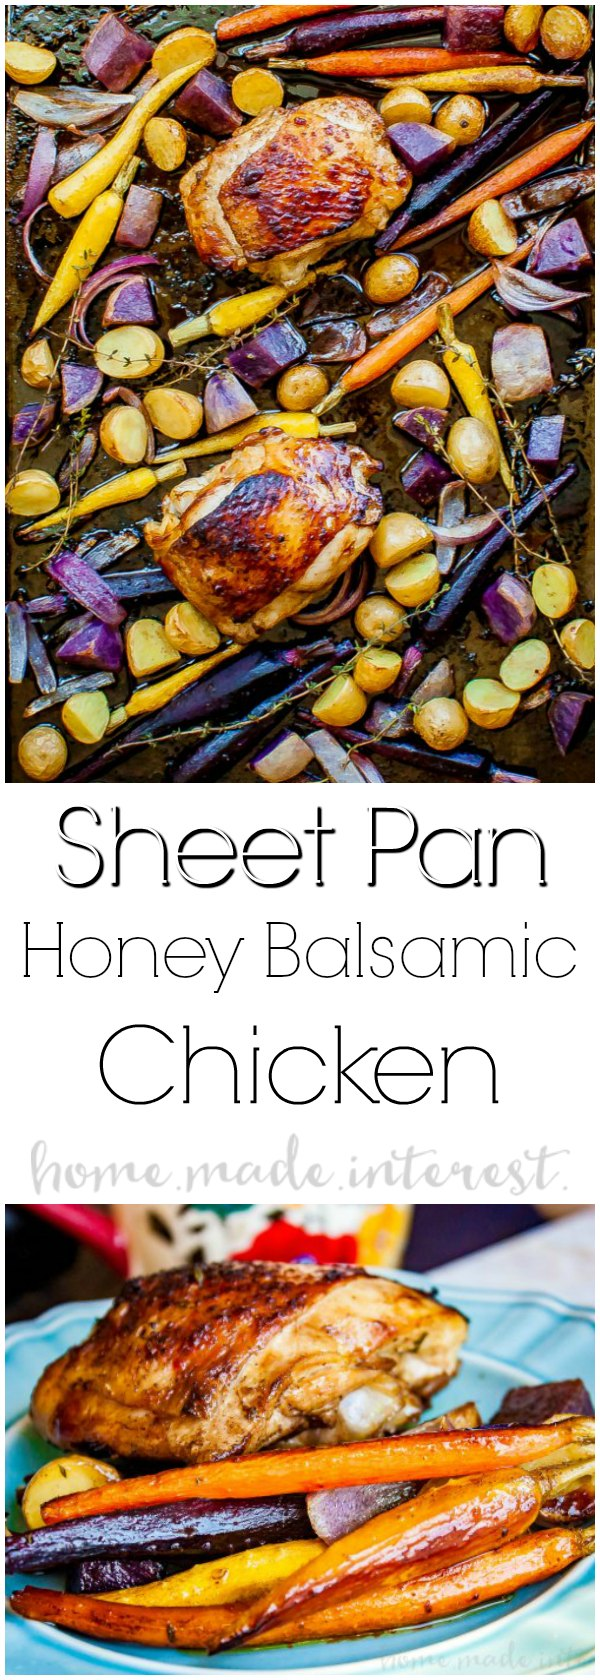 Sheet Pan Honey Balsamic Chicken | Sheet pan meals are quick and easy to make. This Sheet Pan Honey Balsamic Chicken is ready in less than 45 minutes. This is an easy weeknight chicken dinner. This easy sheet pan chicken dinner is an amazing dinner idea full of roasted carrots and tender chicken thighs.